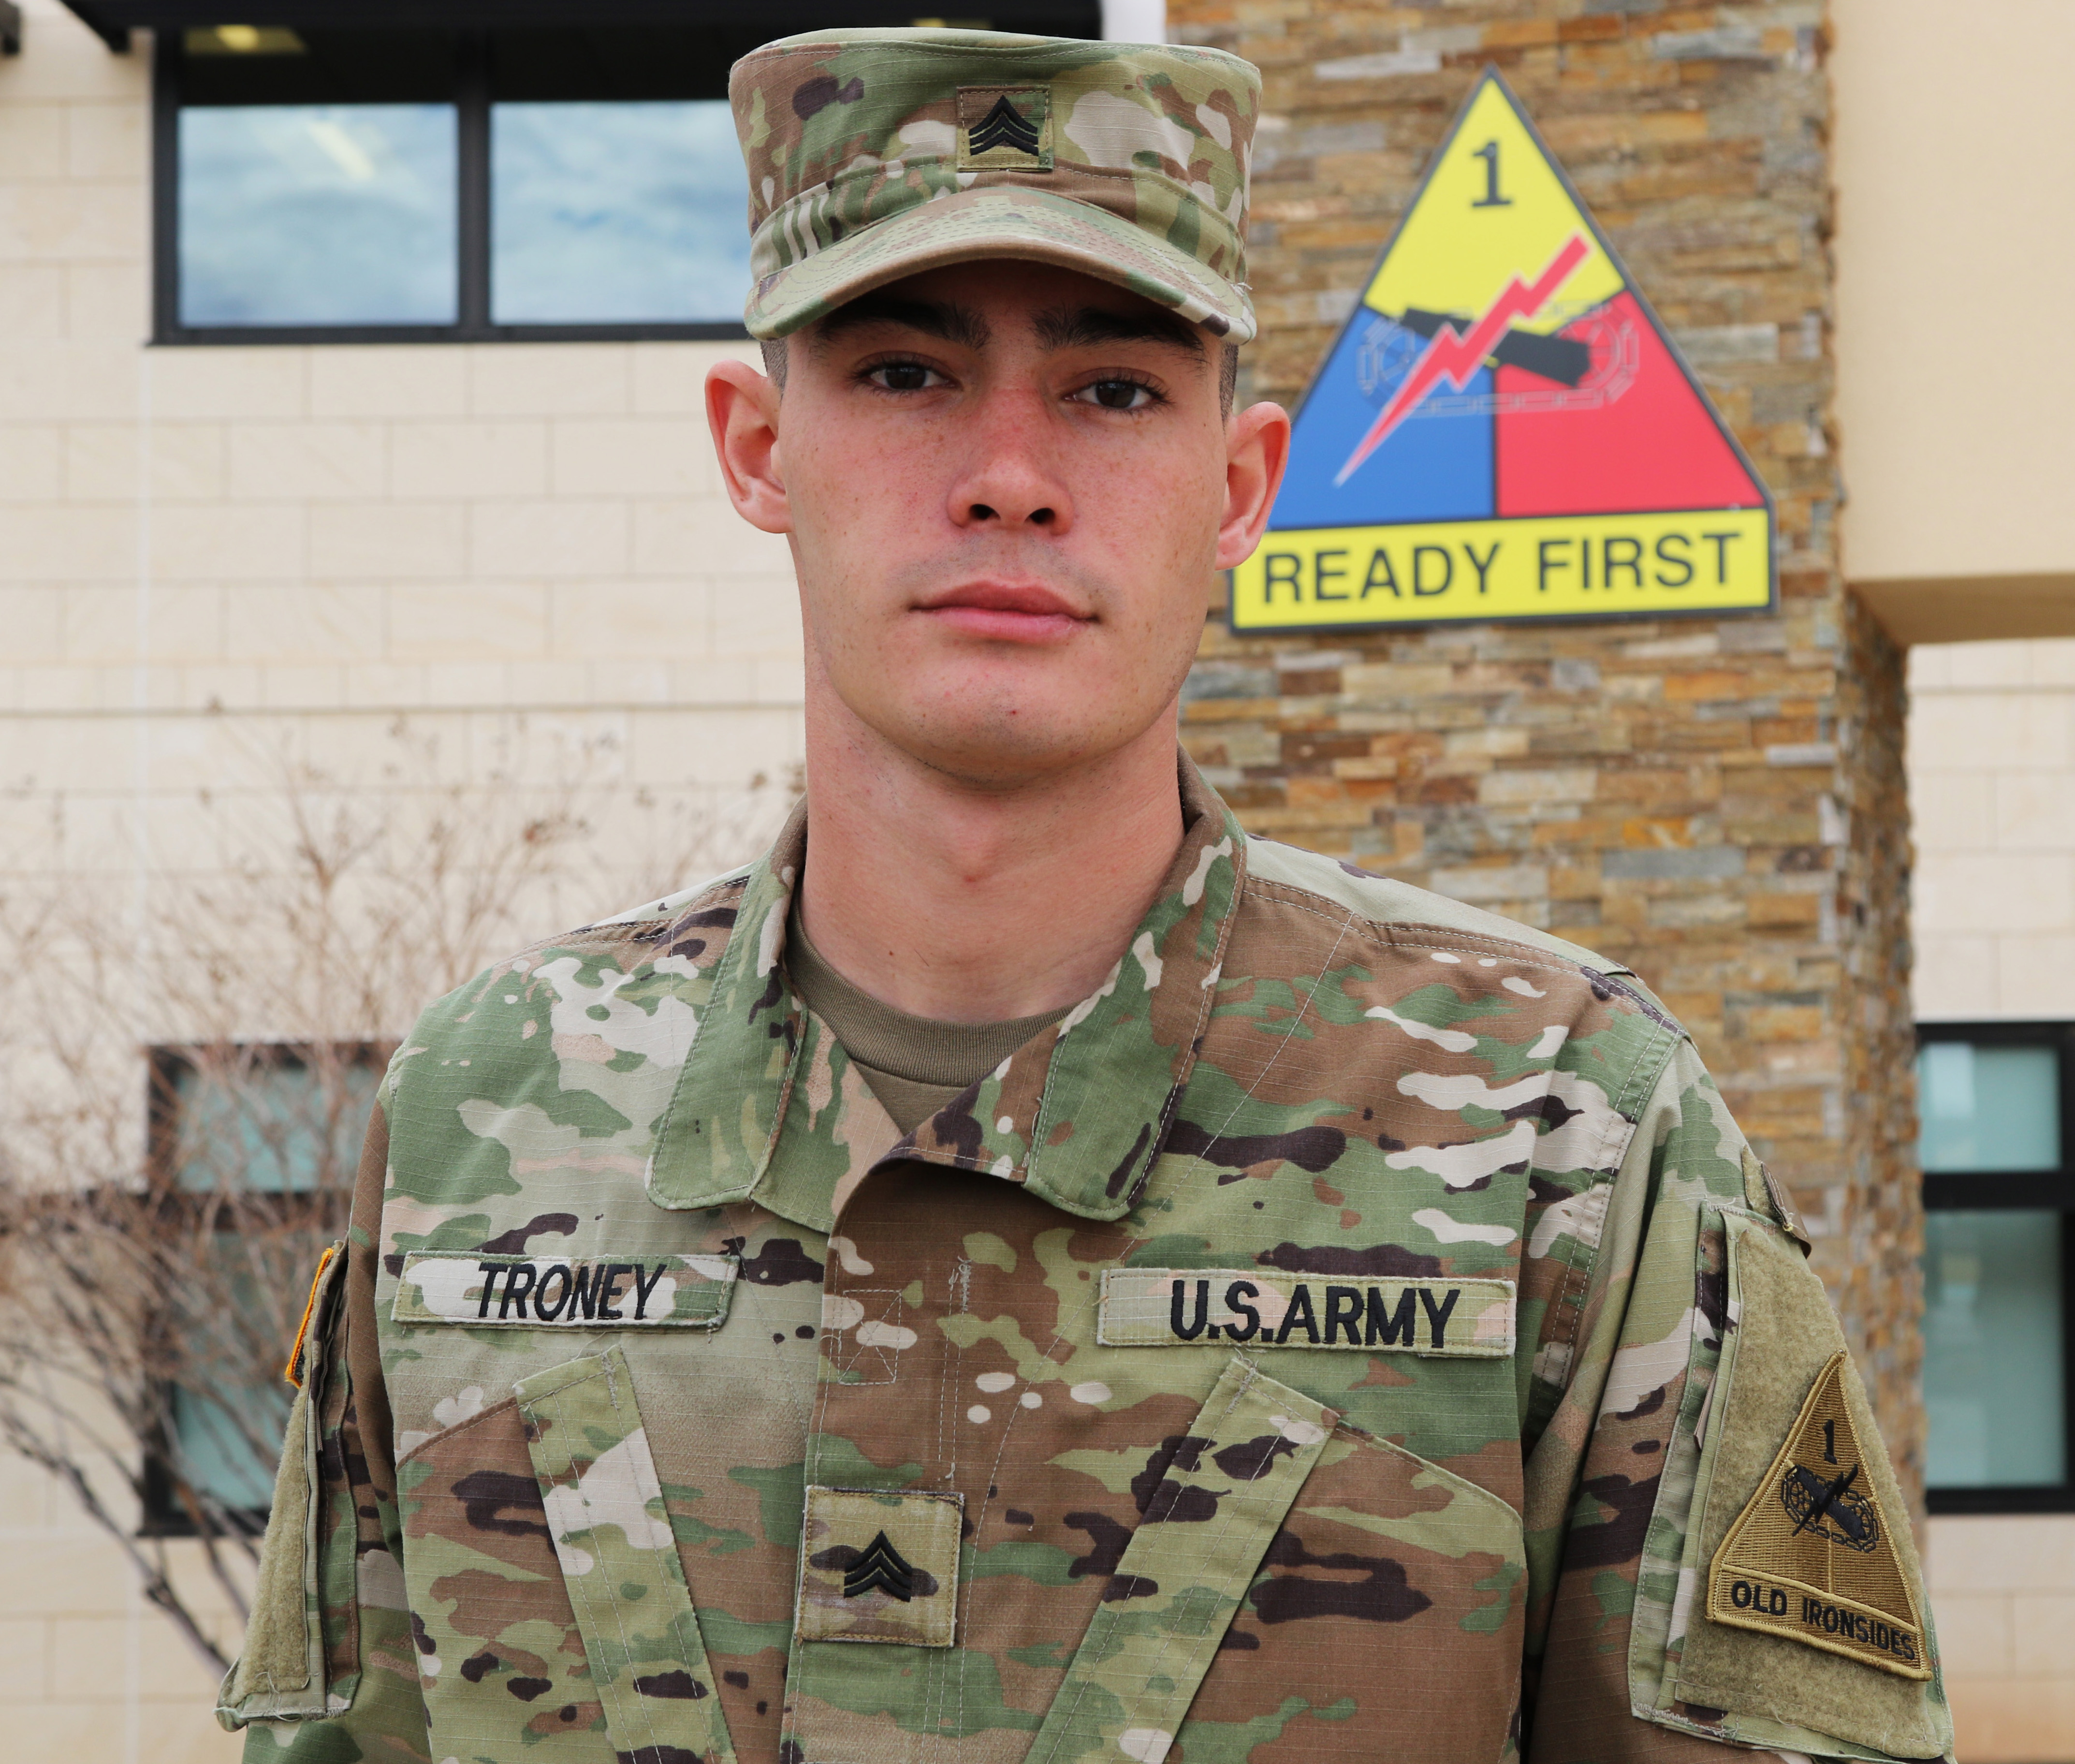 Sgt. Trey Troney, a field artillery cannon crewmember assigned to 2nd Battalion, 3rd Field Artillery Regiment, 1st Stryker Brigade Combat Team, 1st Armored Division, is under investigation after questions arose about whether he lied about saving a man after a traffic accident on Interstate 20 near Sweetwater, Texas, Dec. 22, 2018. (Staff Sgt. Killo Gibson/Army)